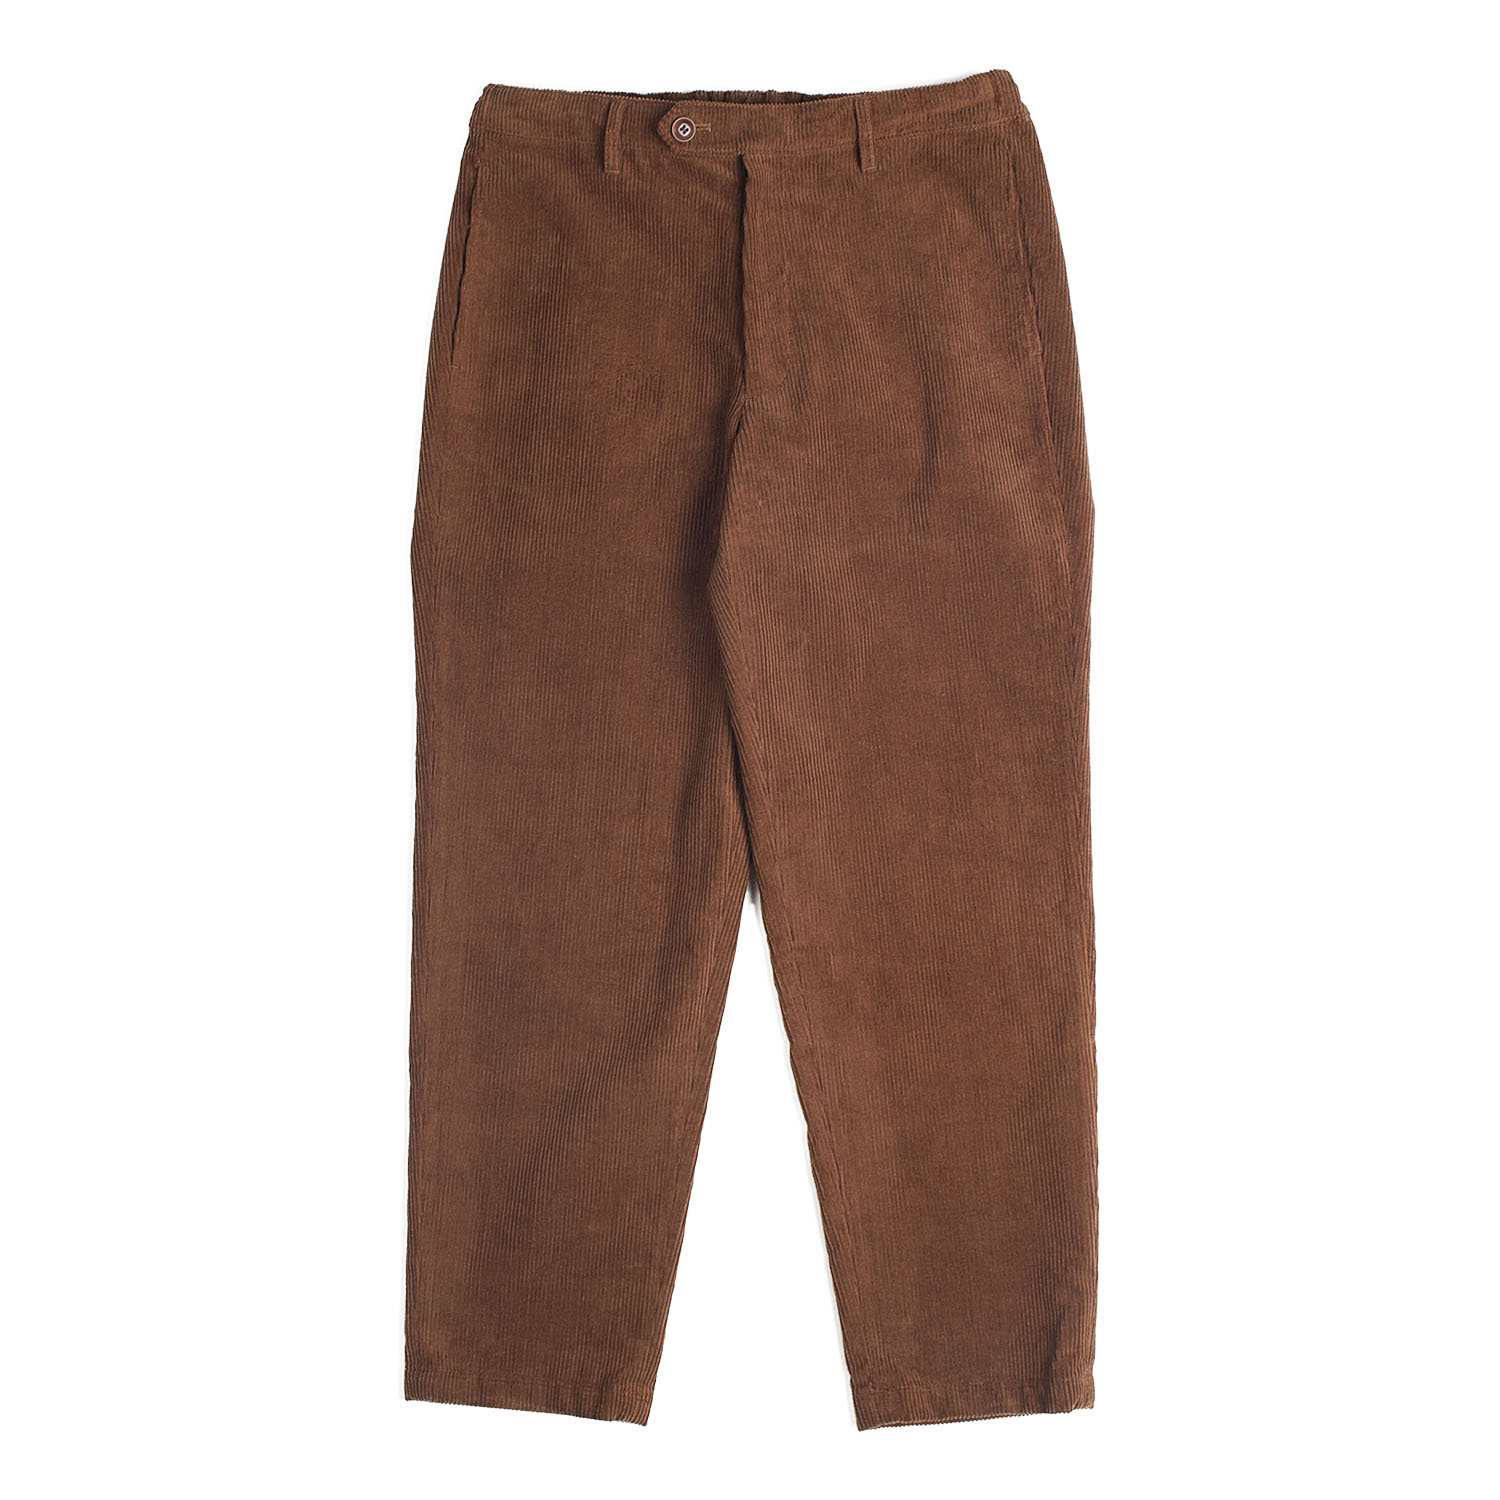 Utility Pants (Brown)